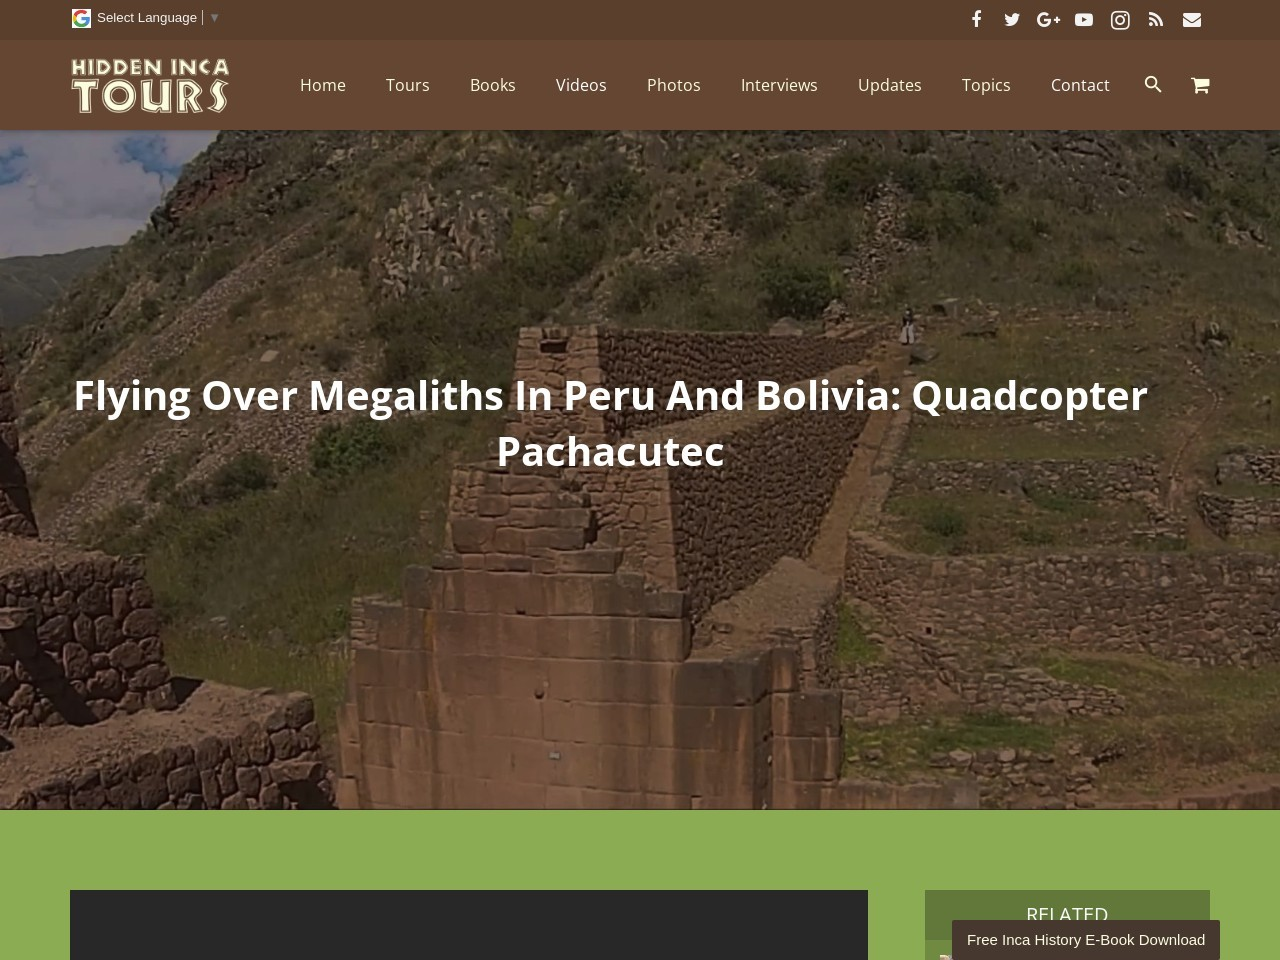 Flying Over Megaliths In Peru And Bolivia: Quadcopter Pachacutec